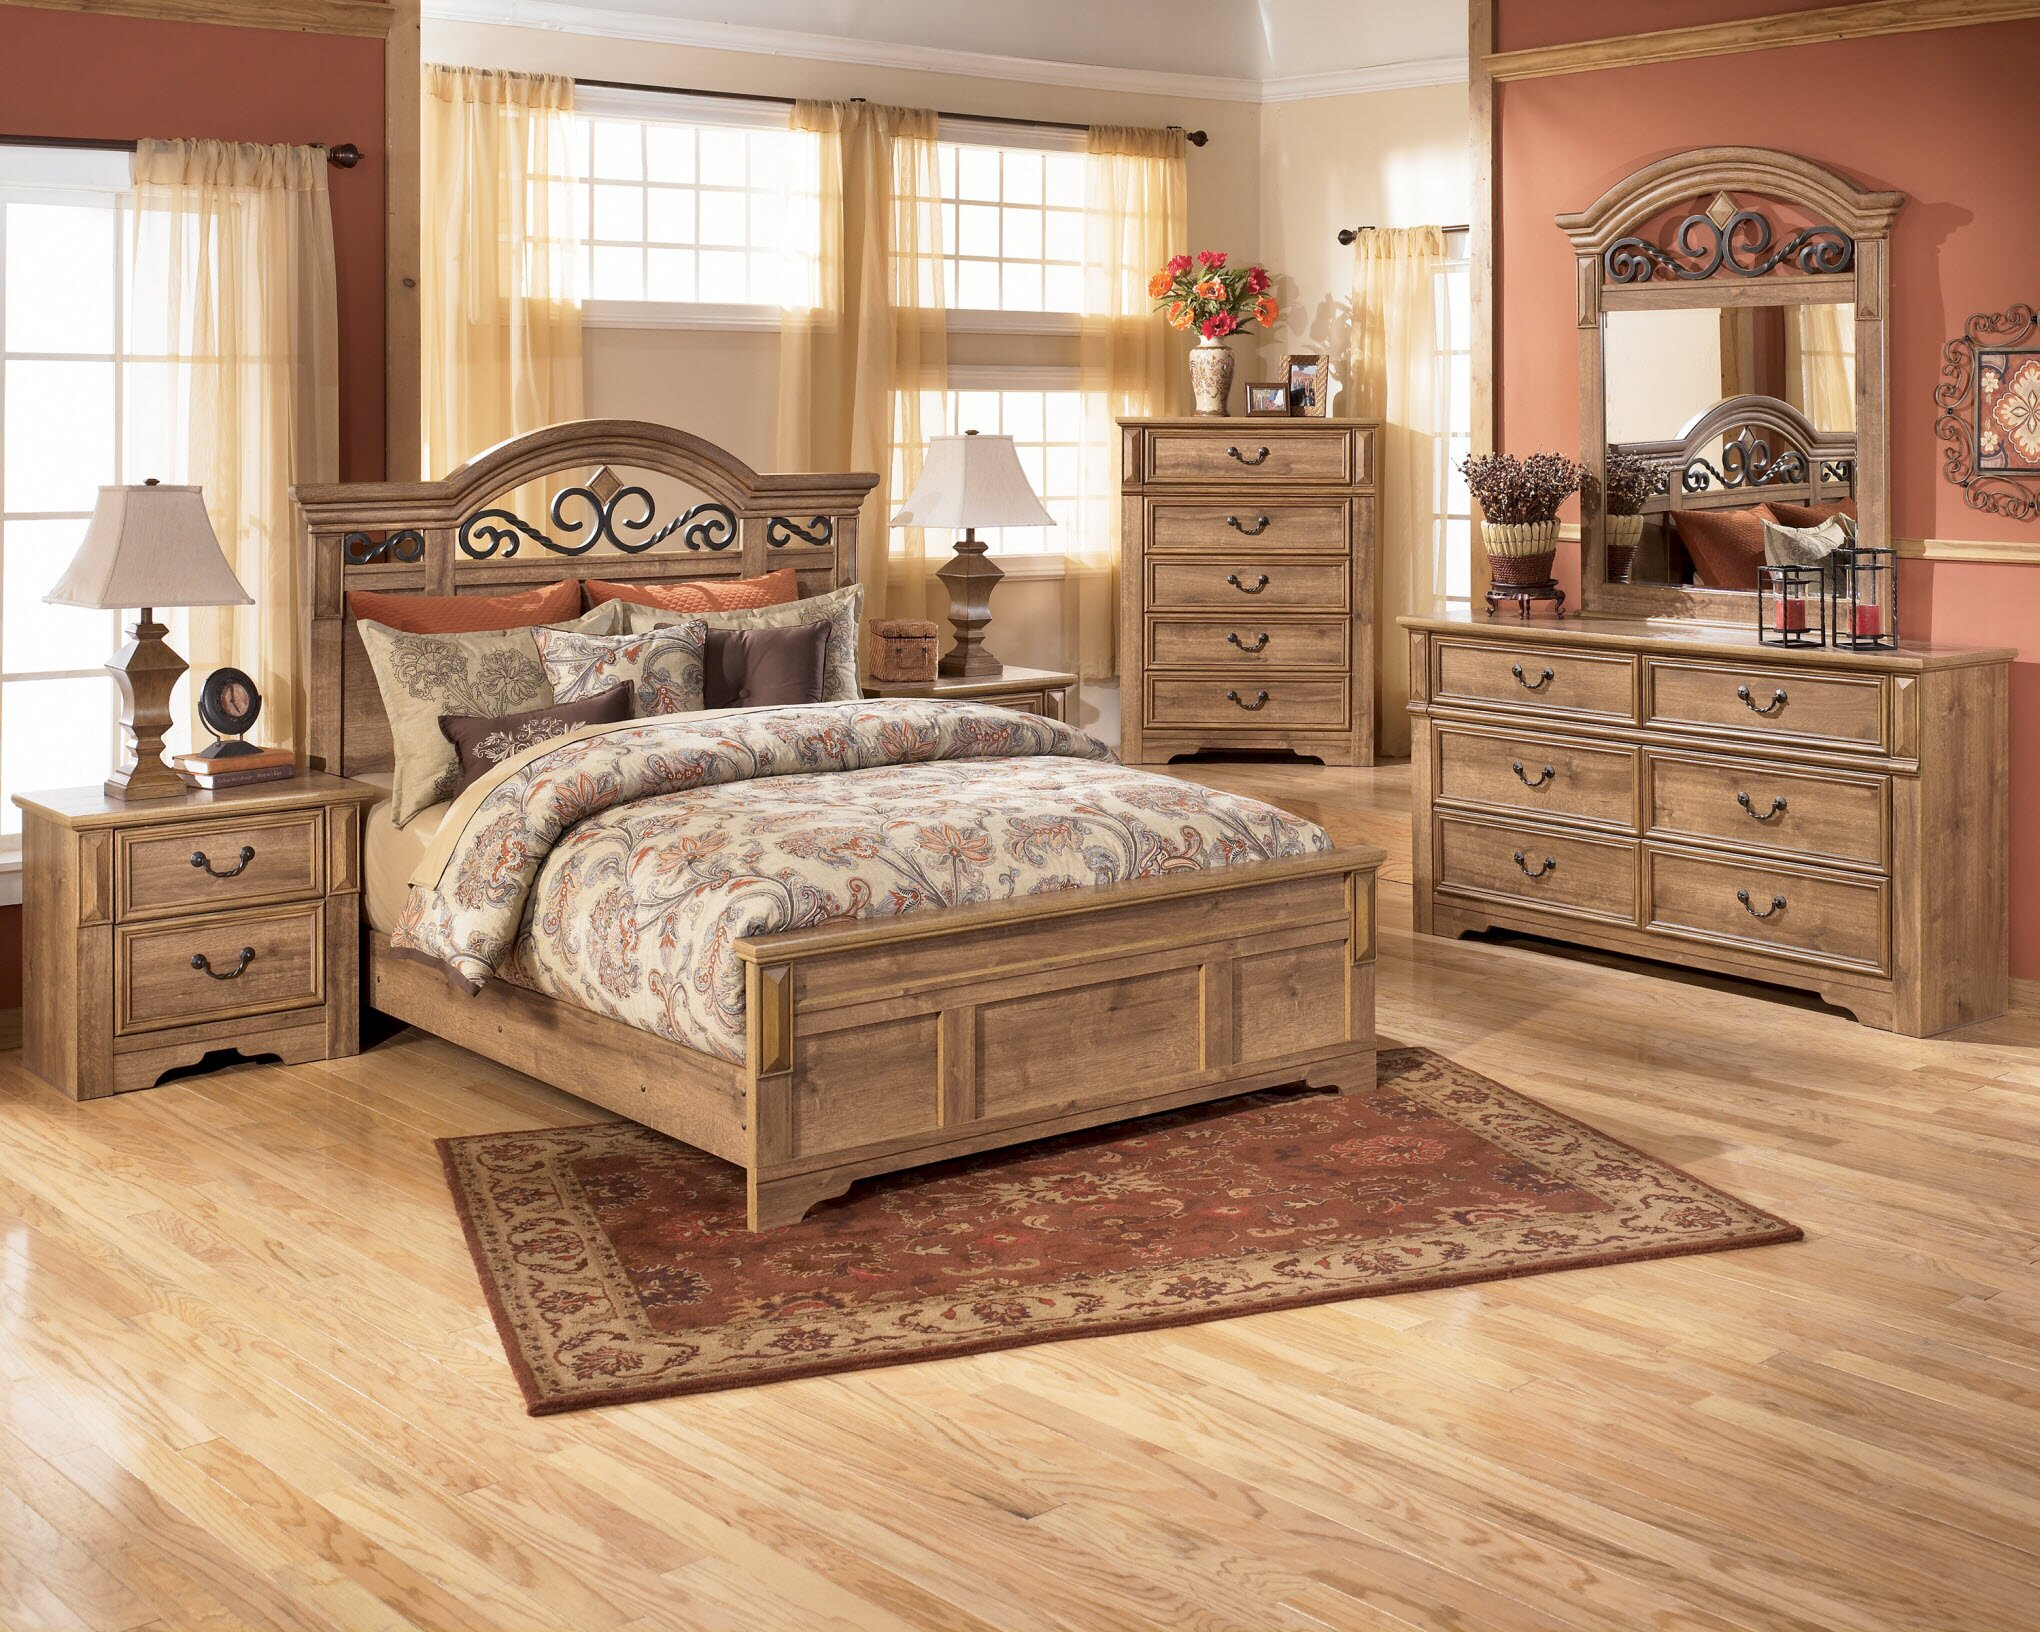 Bedroom craigslist bedroom sets for elegant bedroom for I need bedroom furniture